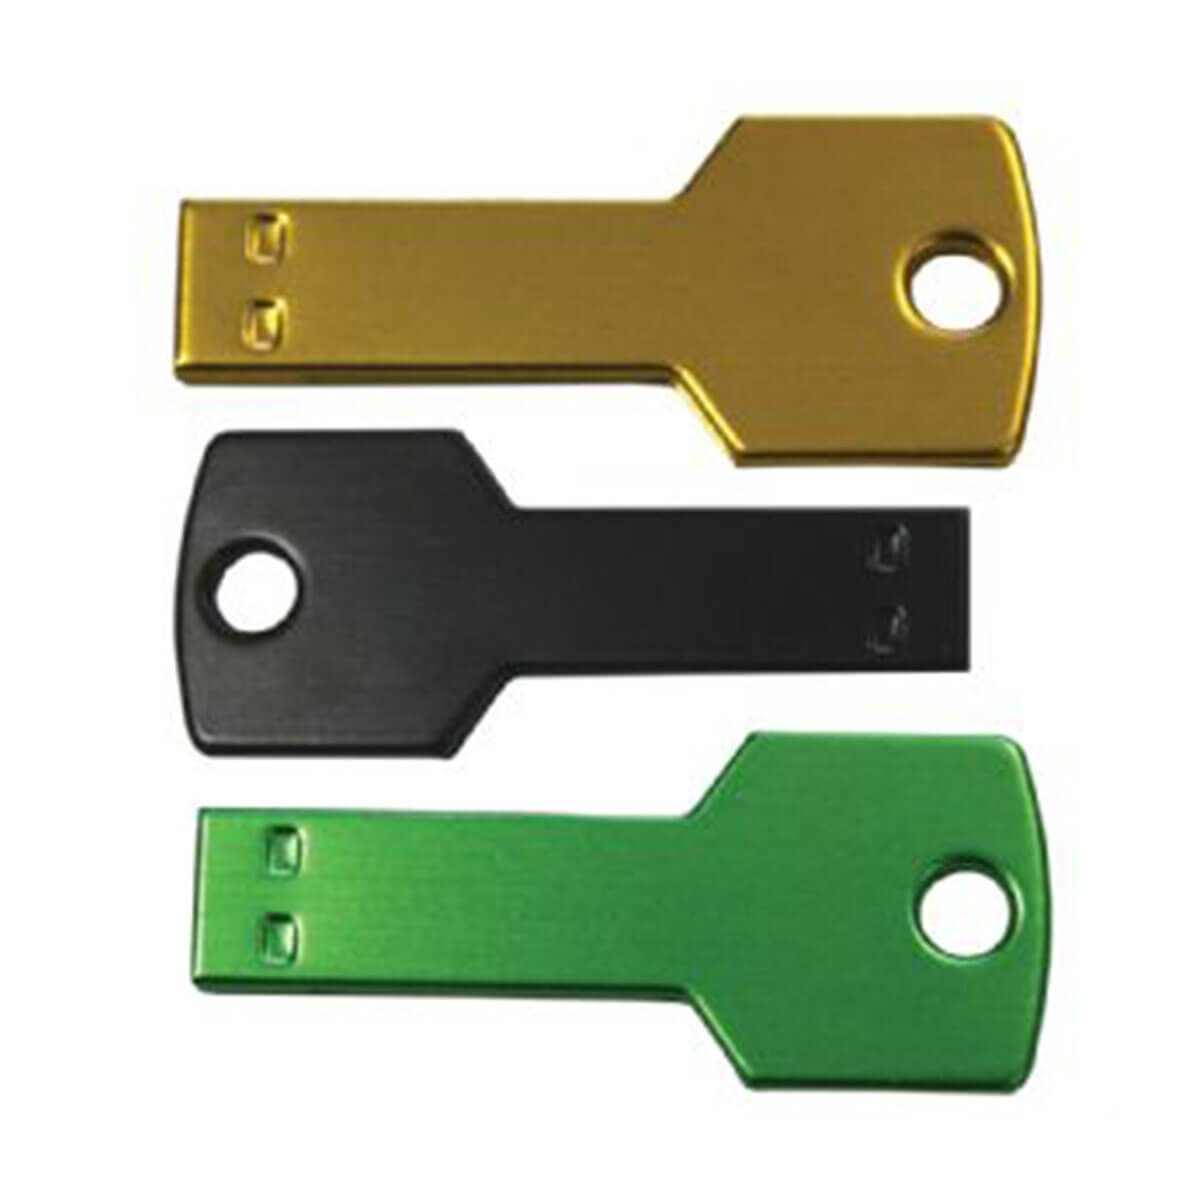 Coloured Key USB Flash Drive-Black, Blue, Red, Yellow, White